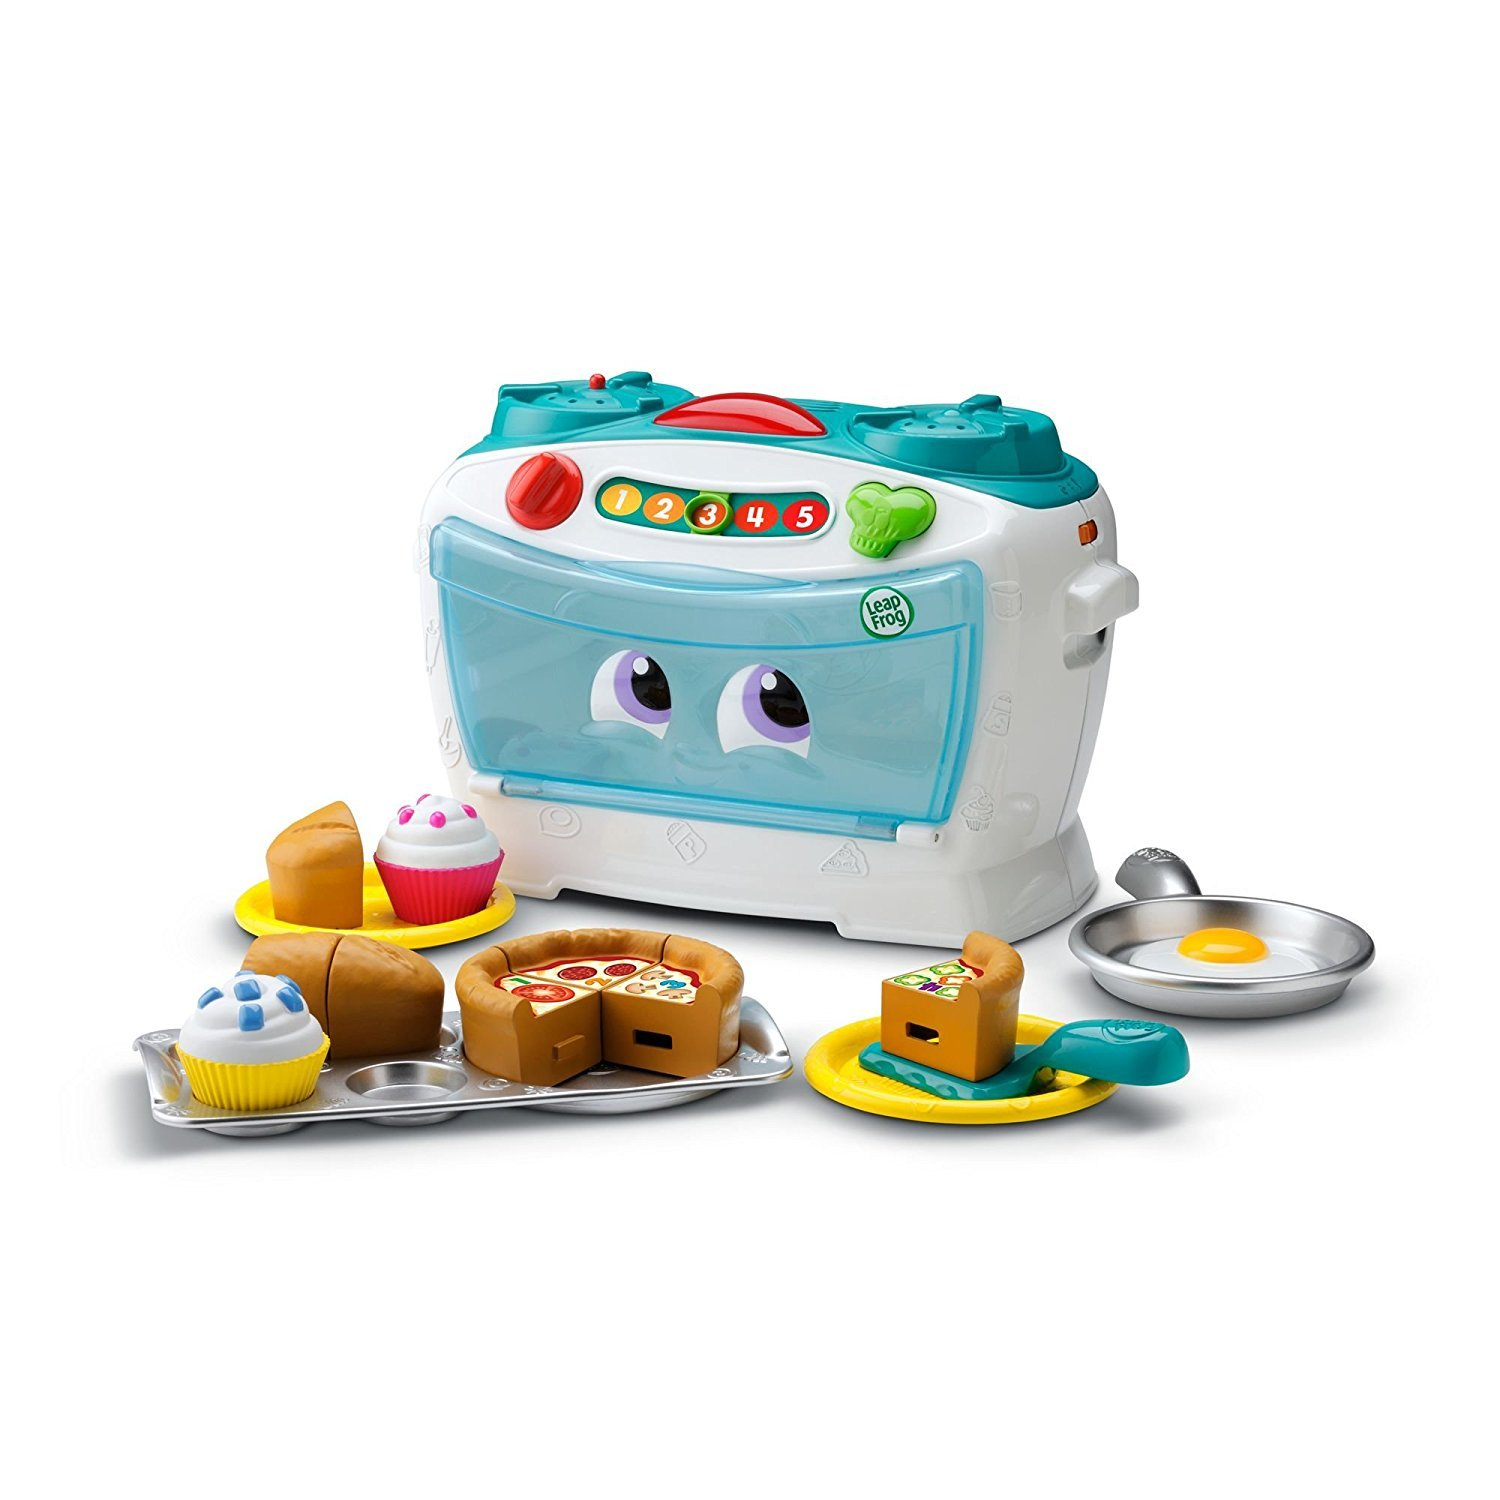 LeapFrog Number Lovin' Oven Learning Toy - White/Blue - French